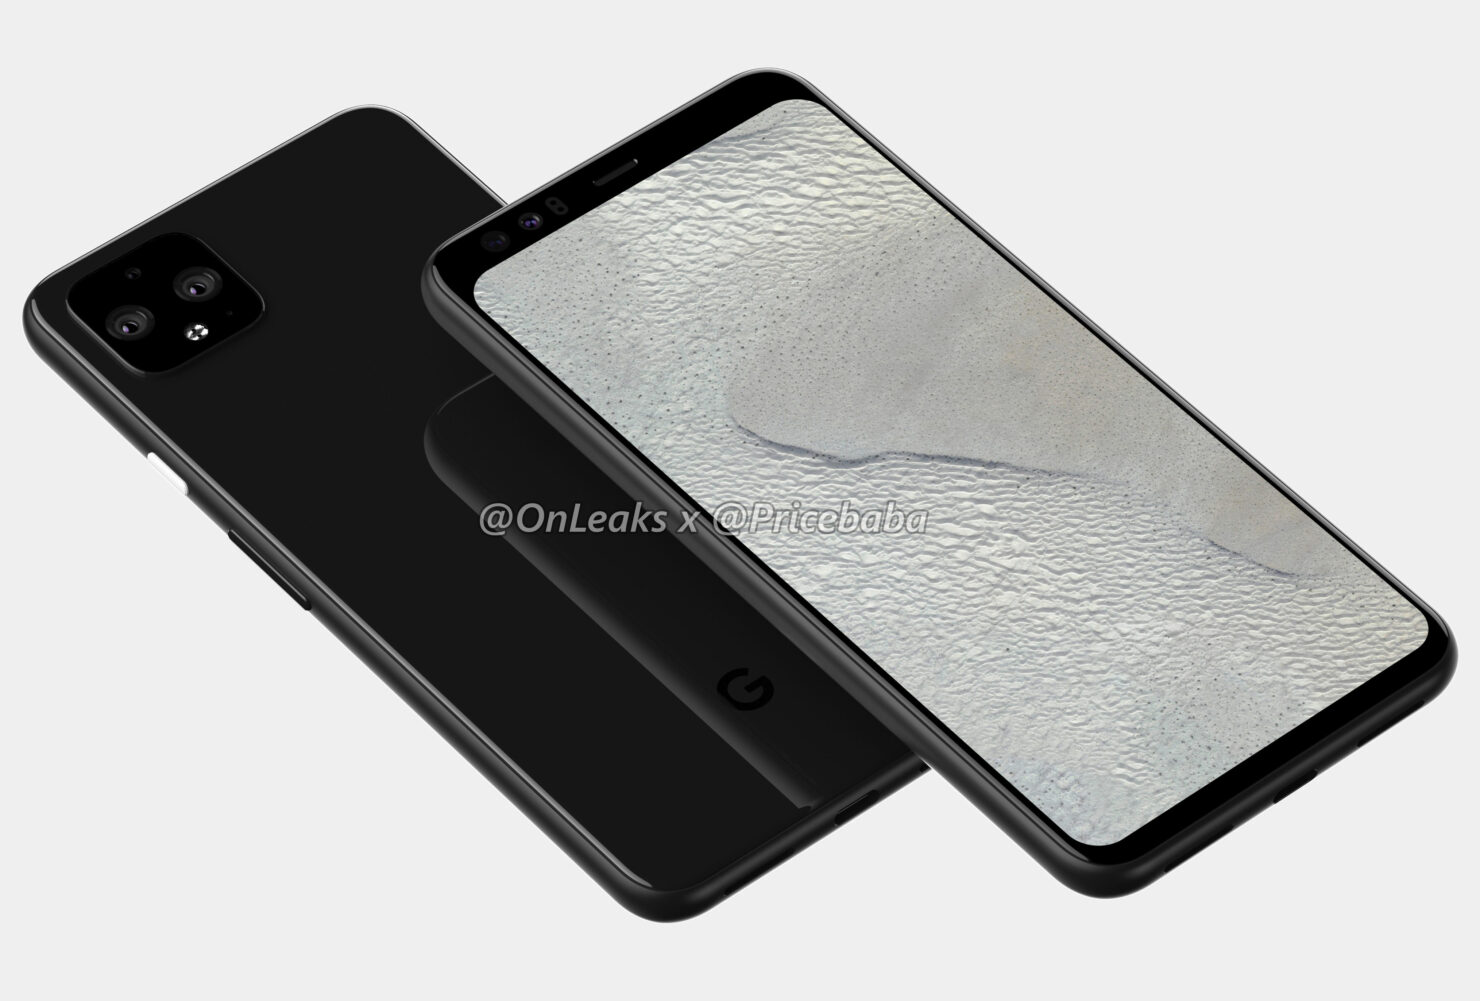 Pixel 4 XL renders show a significantly improved design